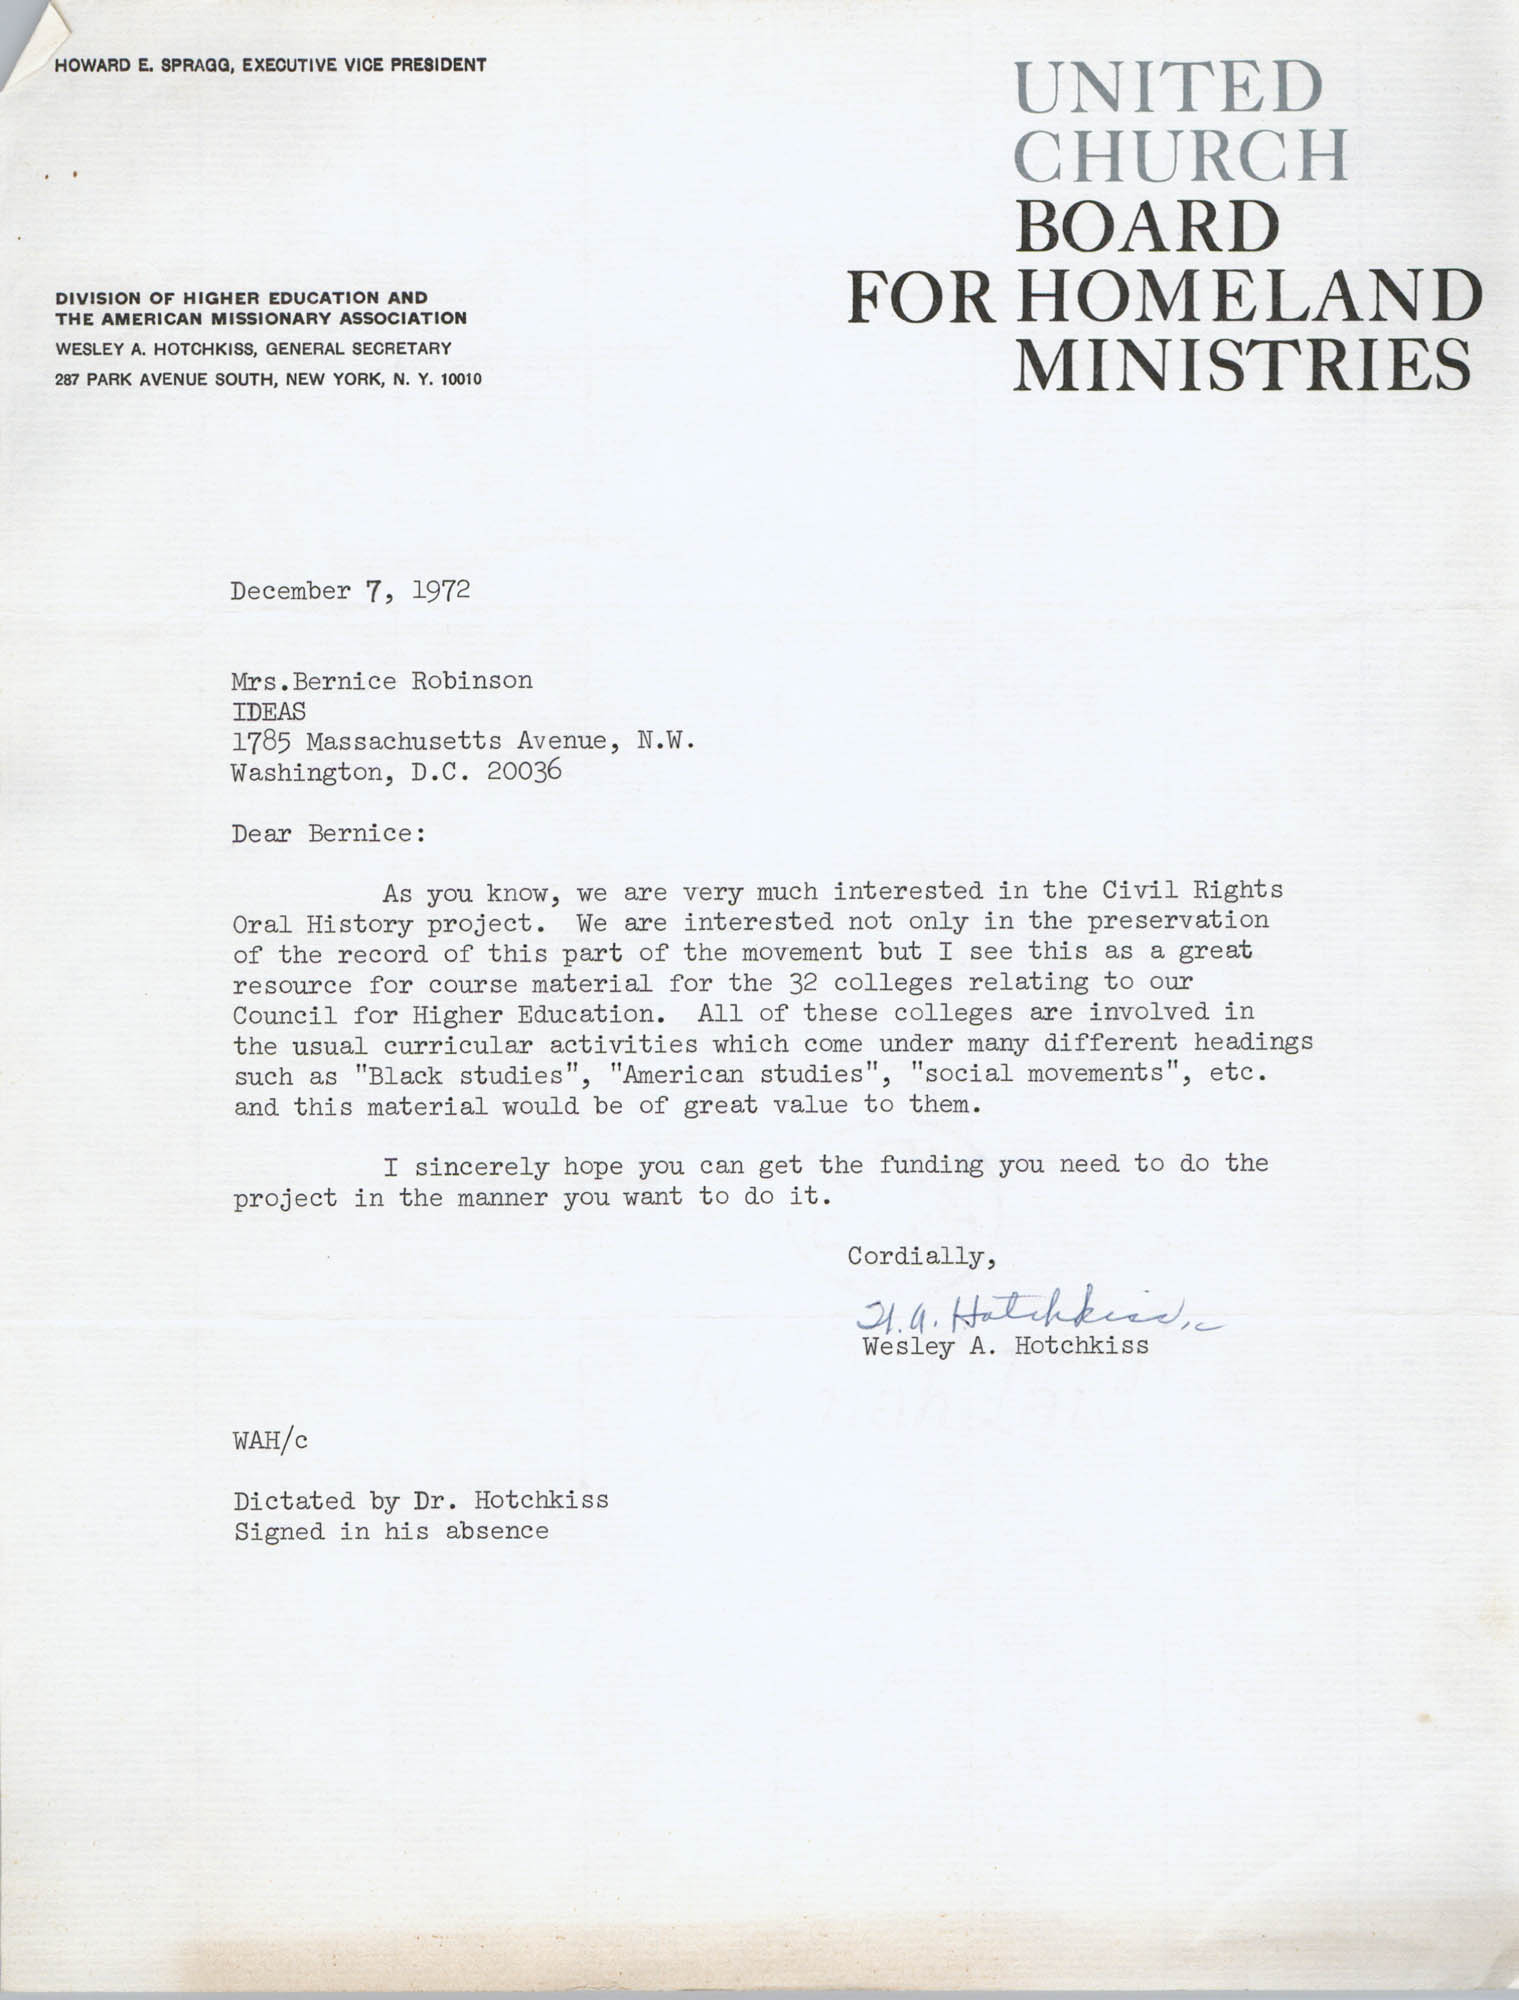 Letter from Wesley Hotchkiss to Bernice Robinson, December 7, 1972